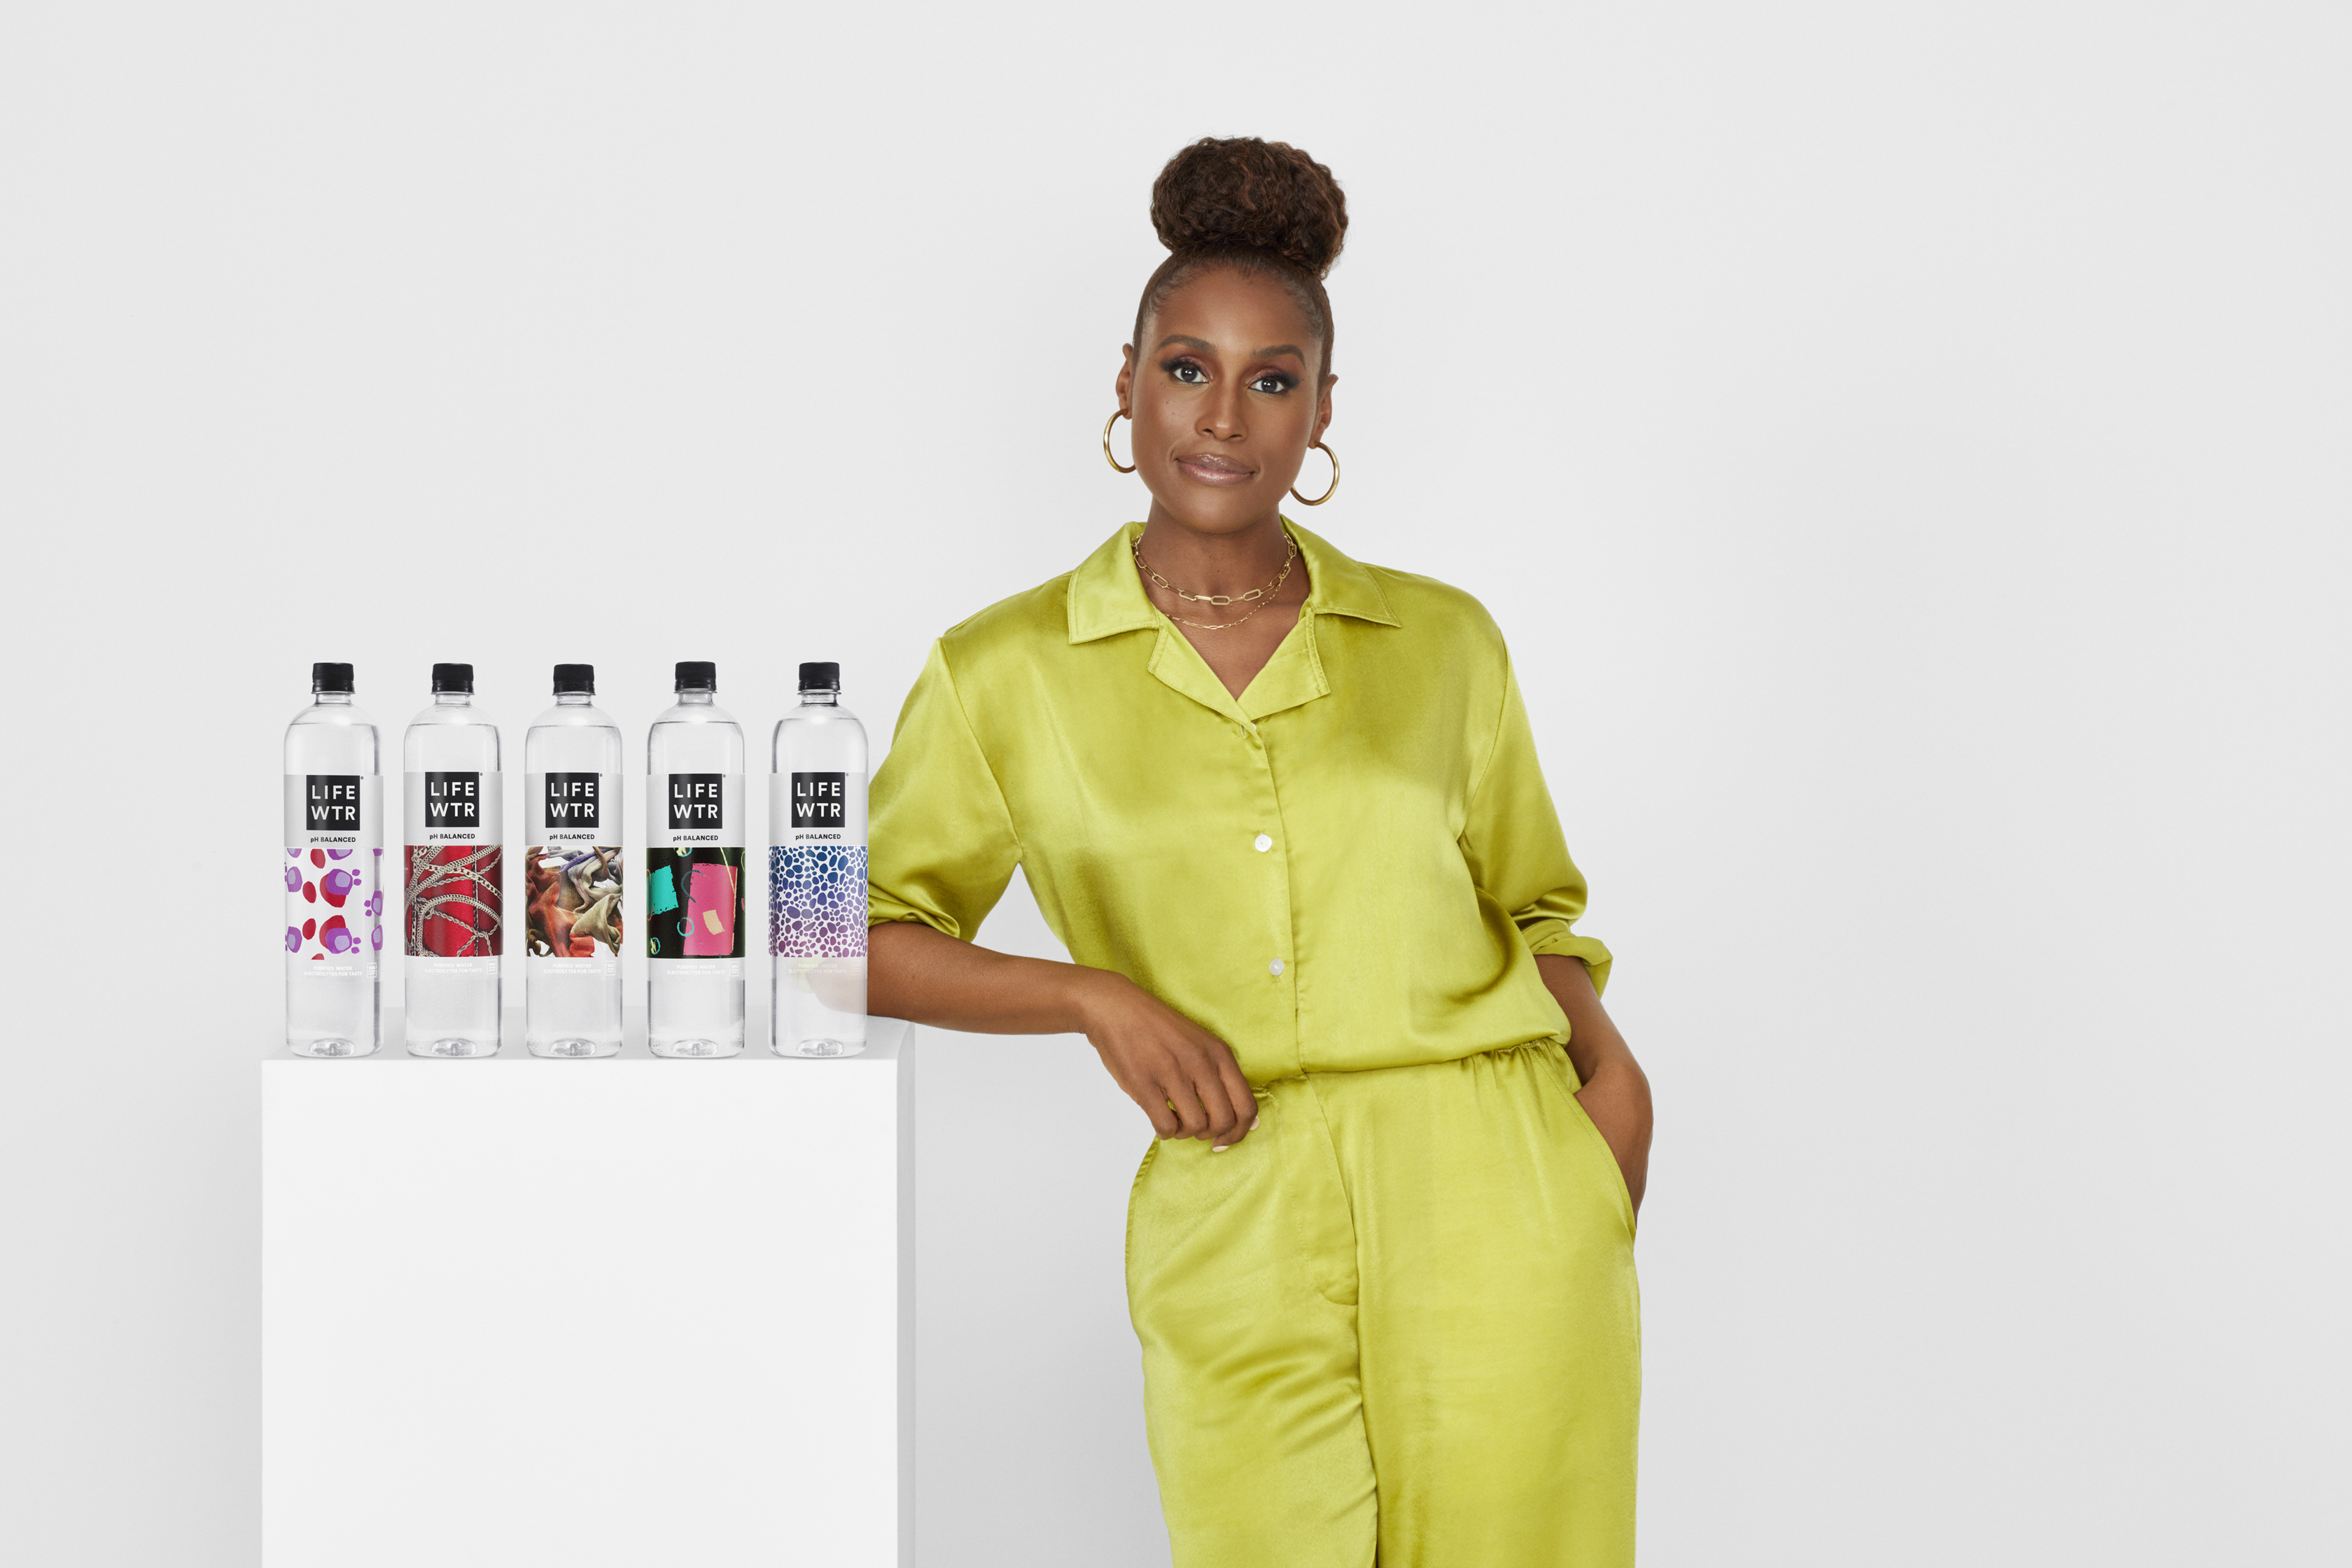 """Issa Rae Partners With LIFEWTR For """"Life Unseen"""" Campaign To Help Creatives"""